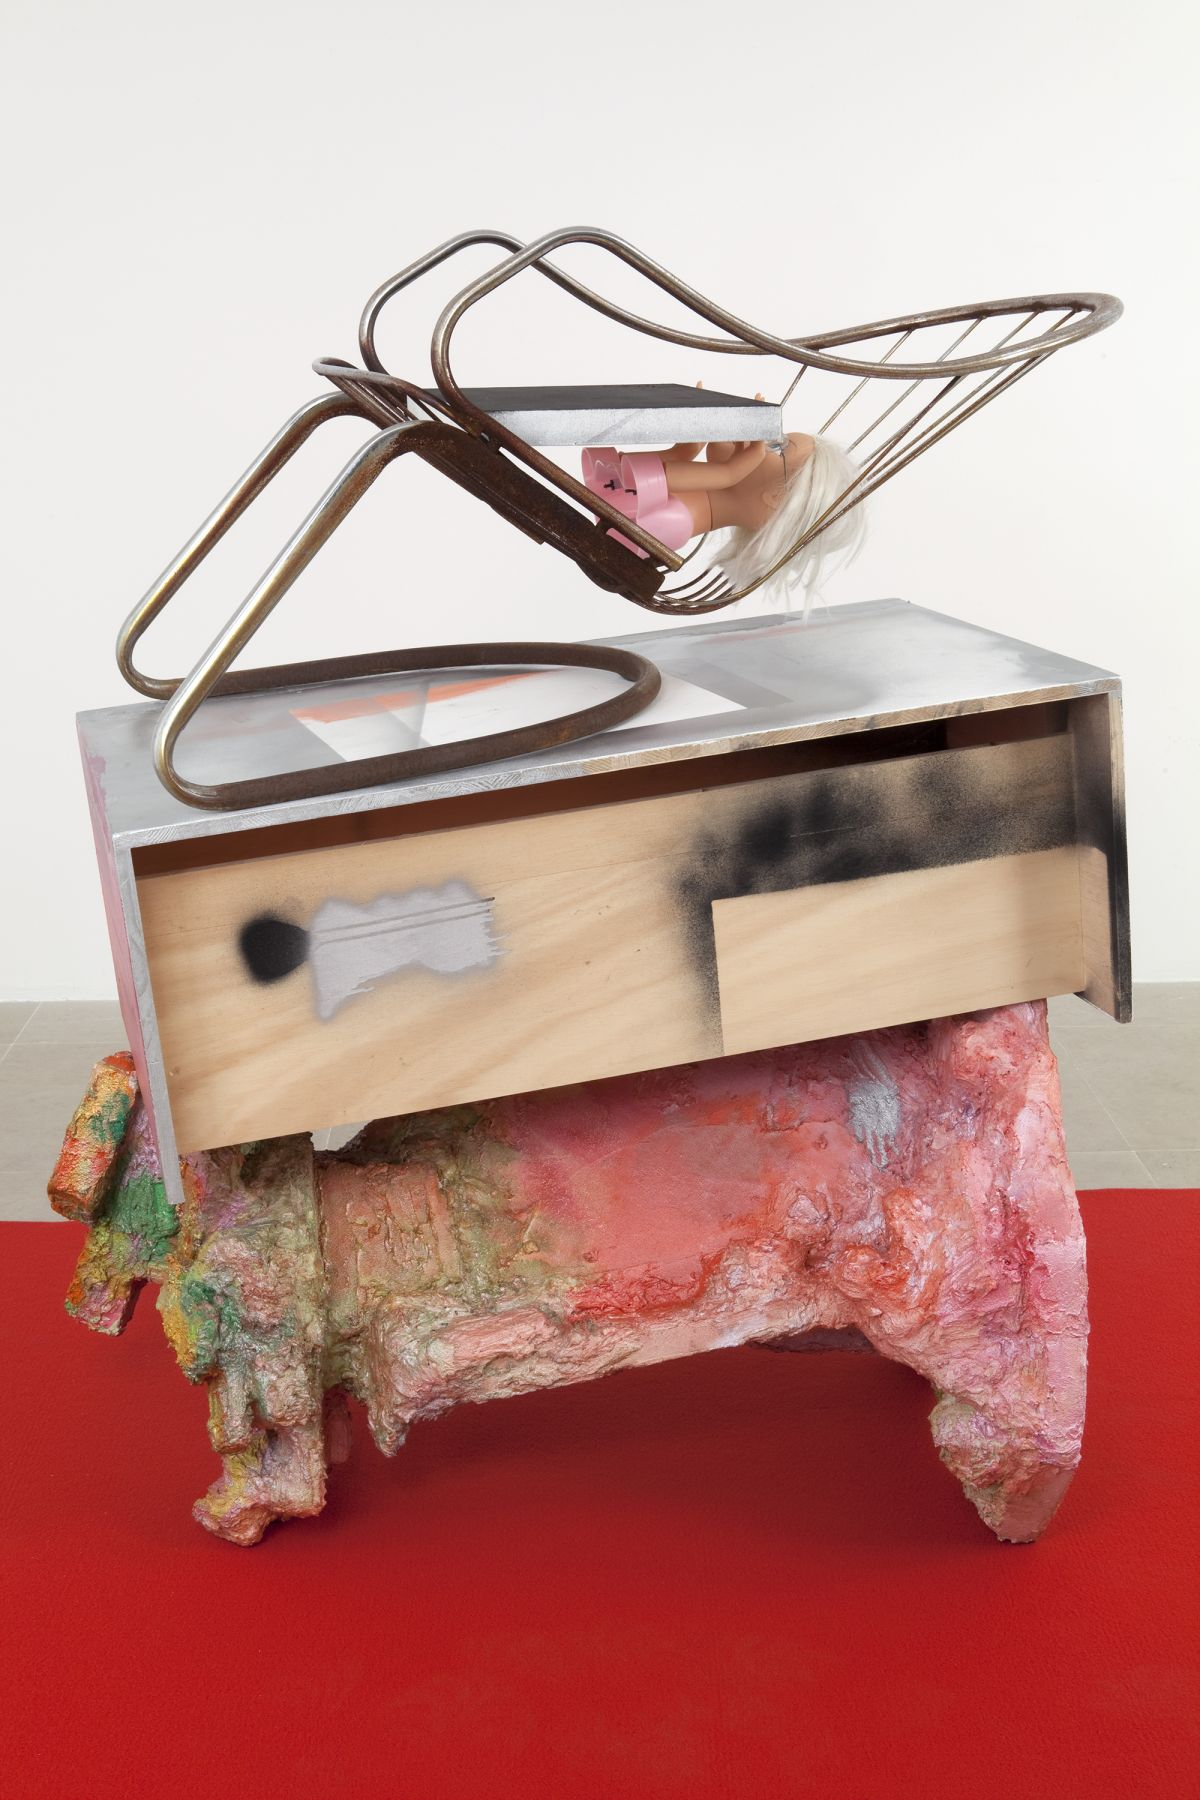 Rachel Harrison, The Spoon Bender, 2011, wood, polystyrene, cement, acrylic, felt, canvas, steel chair, plastic doll, and eyeglasses, 53 1/2 x 59 x 77 inches overall